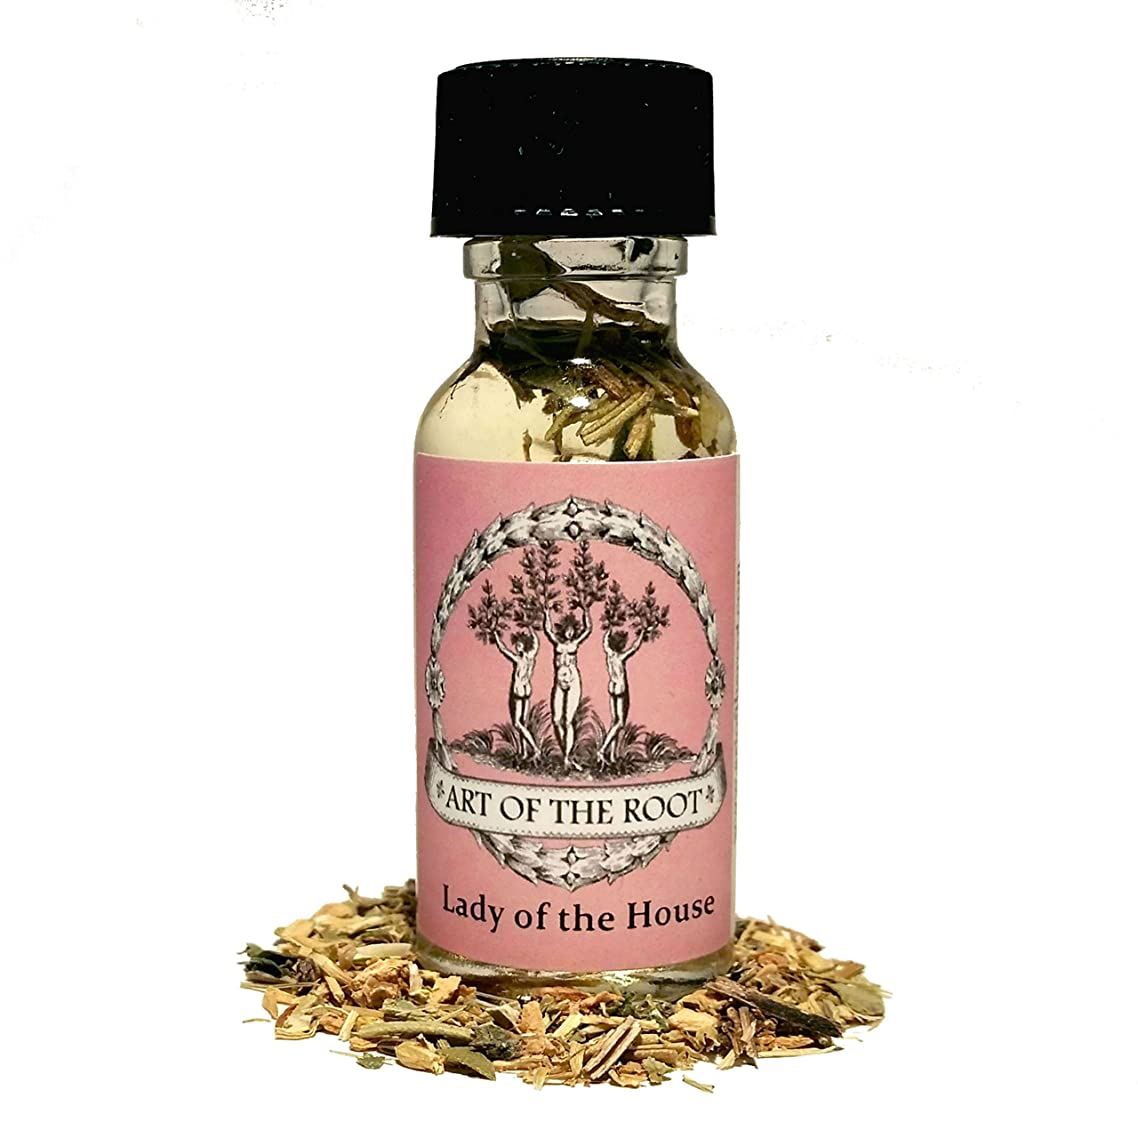 Lady of the House Oil for Respect, Fidelity, & Admiration 1/2 oz Hoodoo Wicca Pagan Voodoo